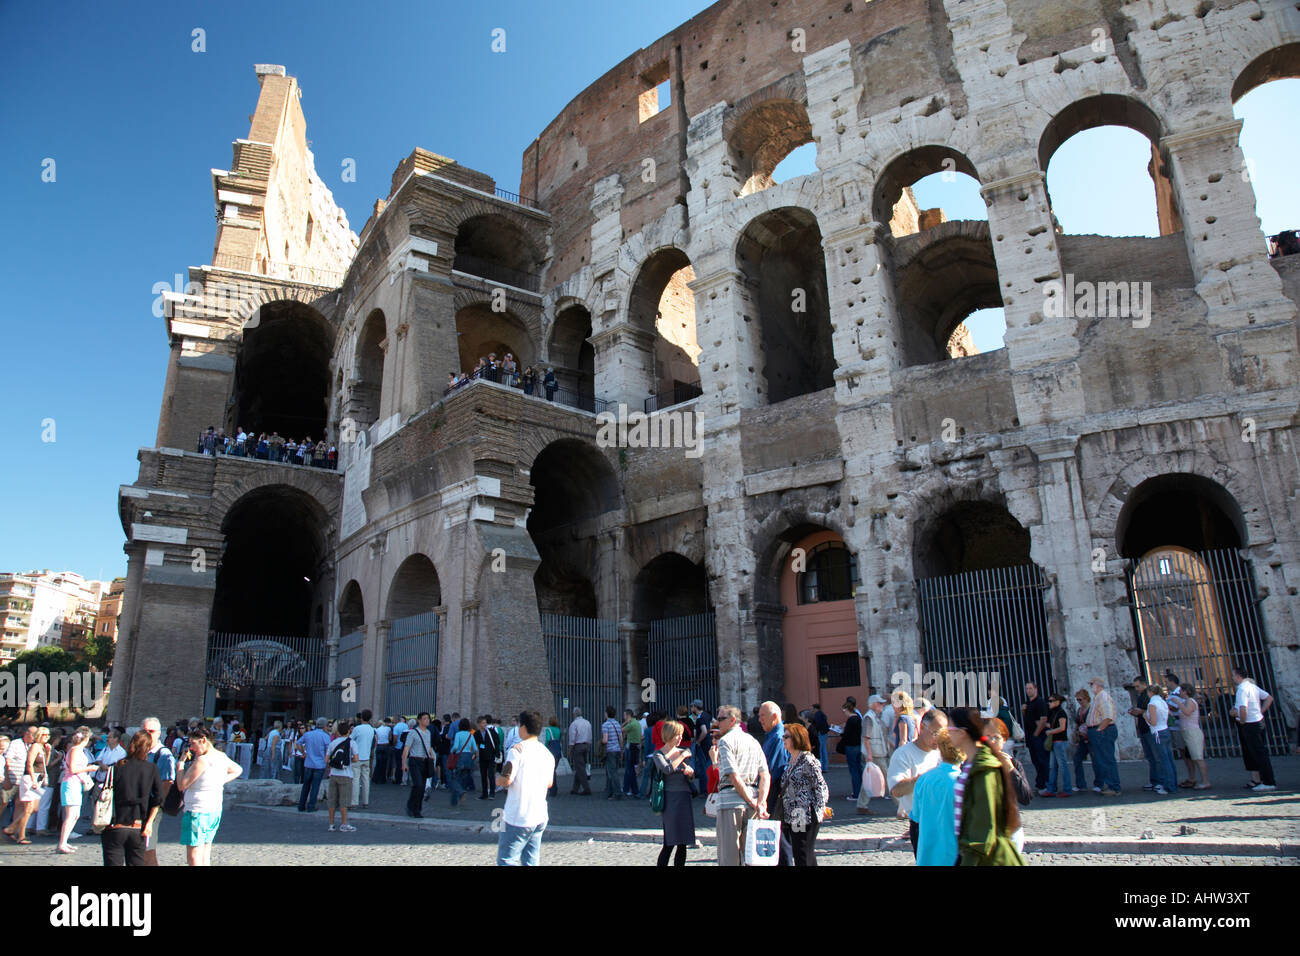 the mid morning queue of tourists queuing around the side of the Colosseum to gain entry Rome Lazio Italy - Stock Image